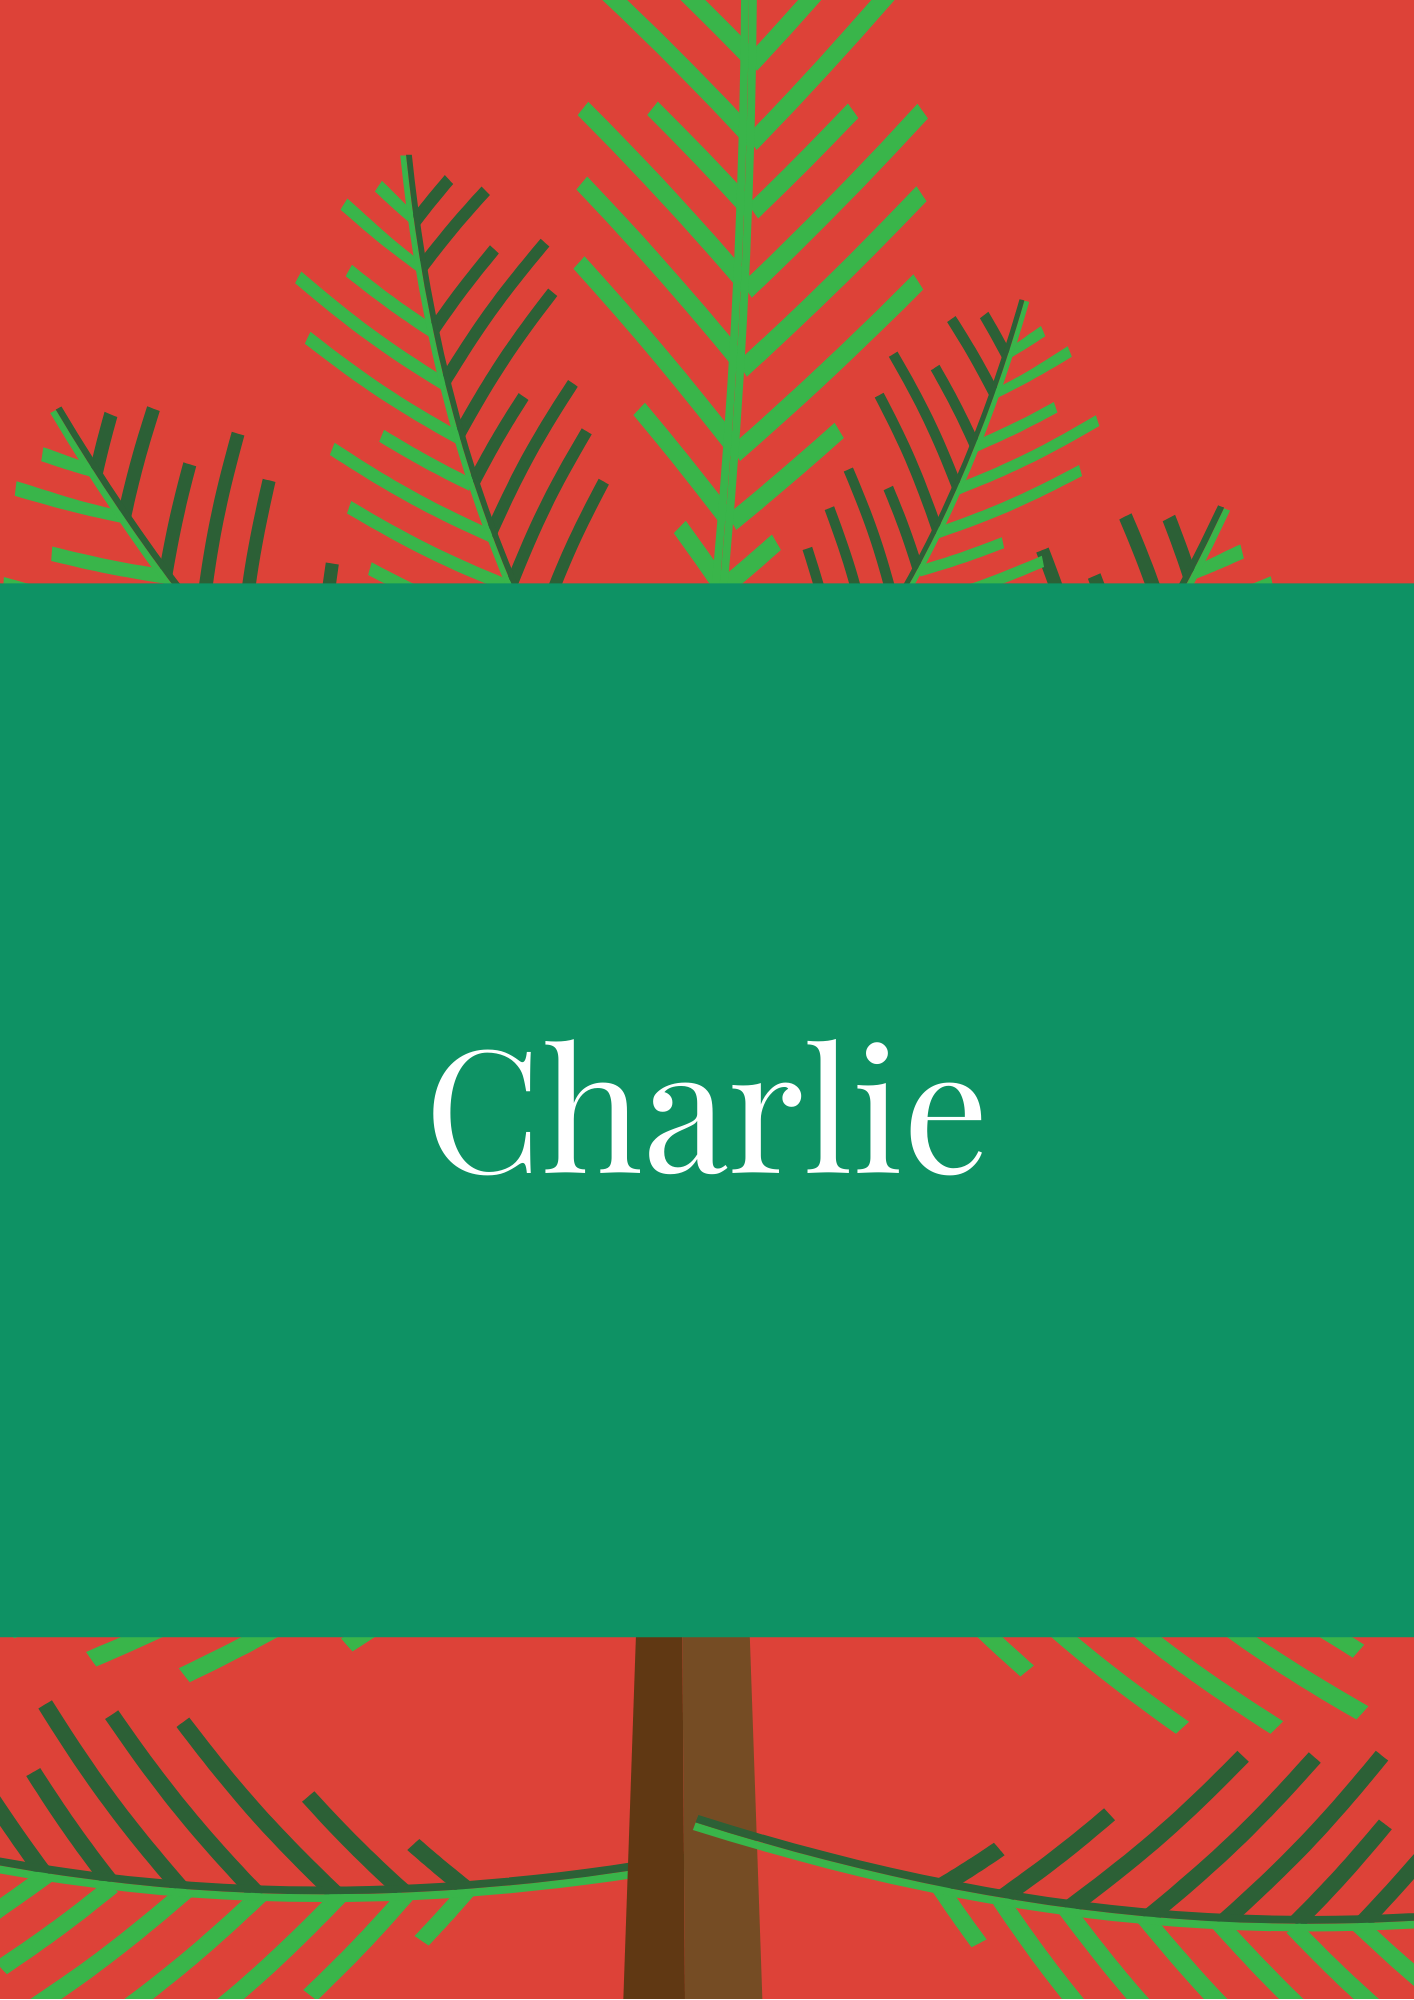 Charlie Elf Names